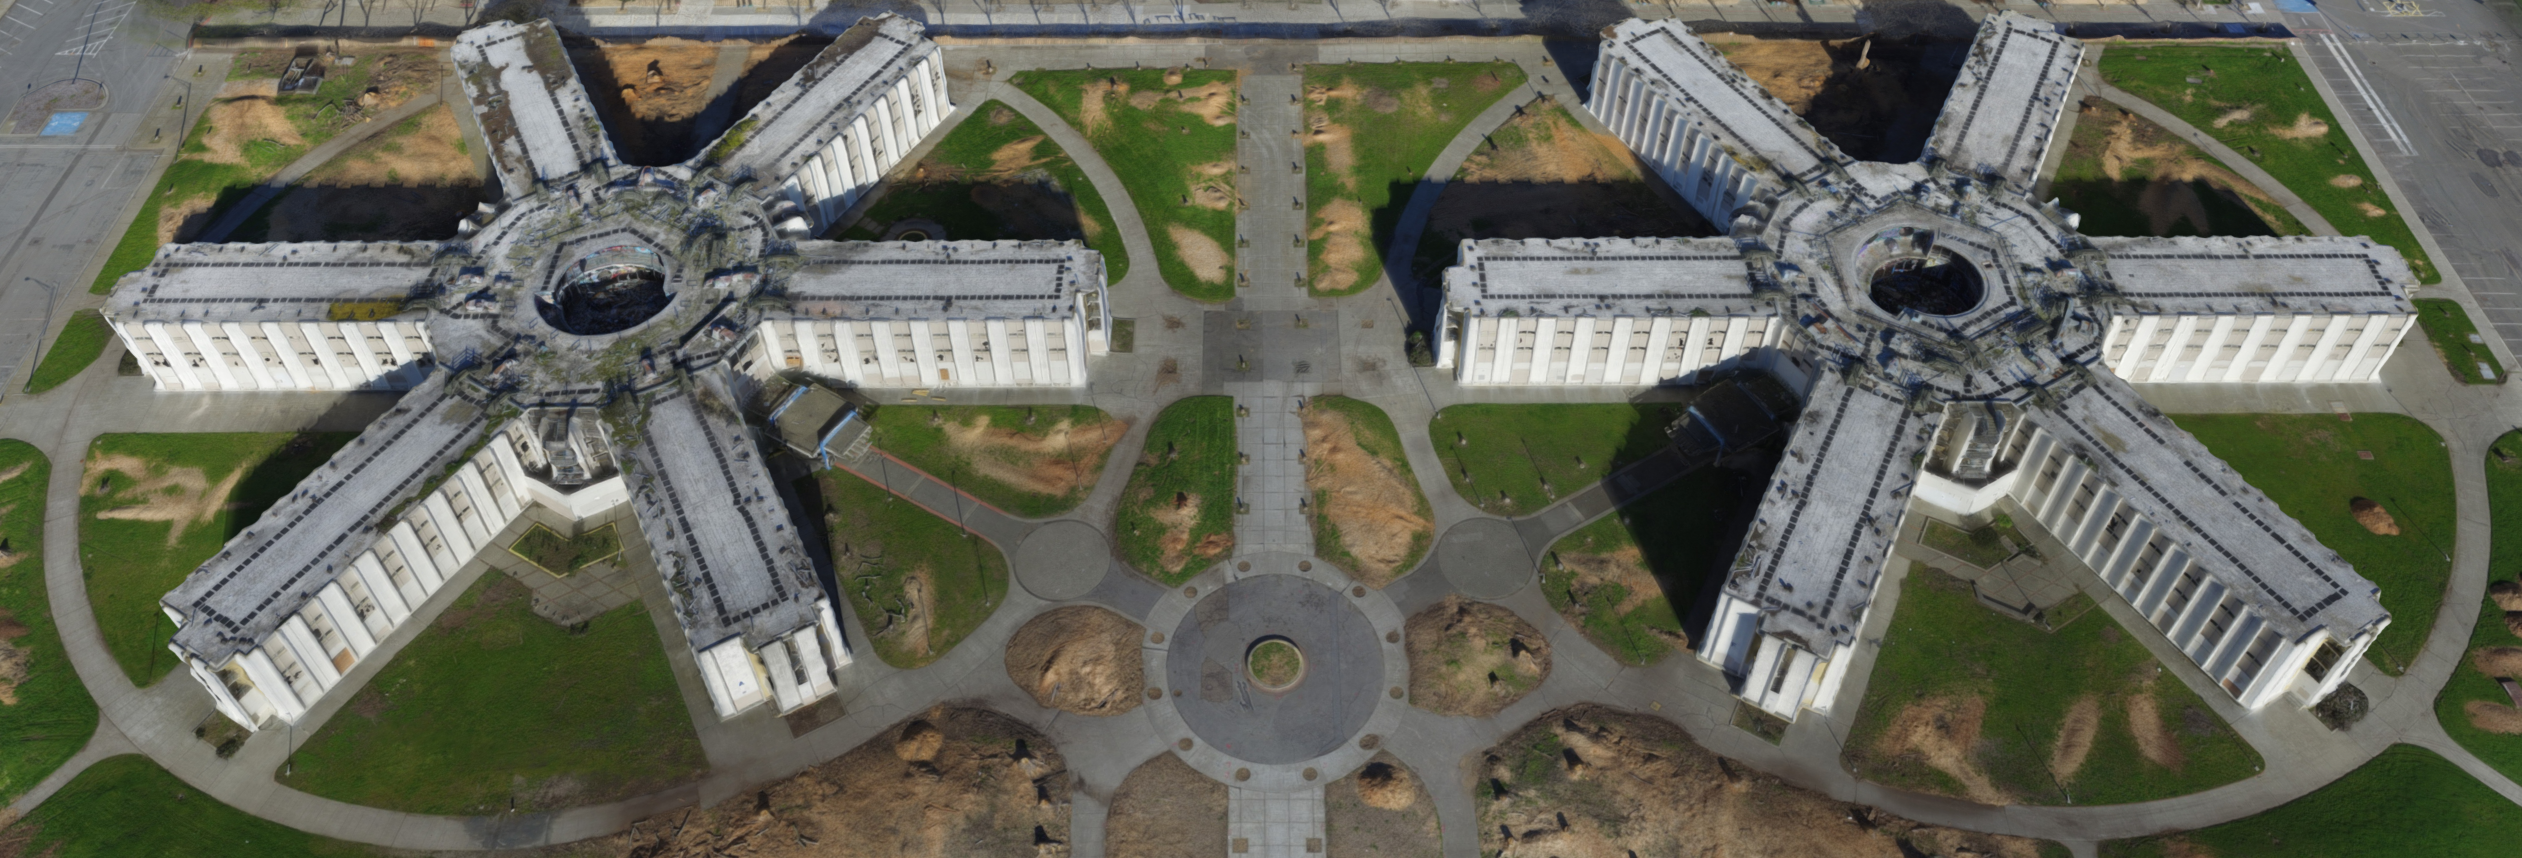 manually drone photo for 2d model